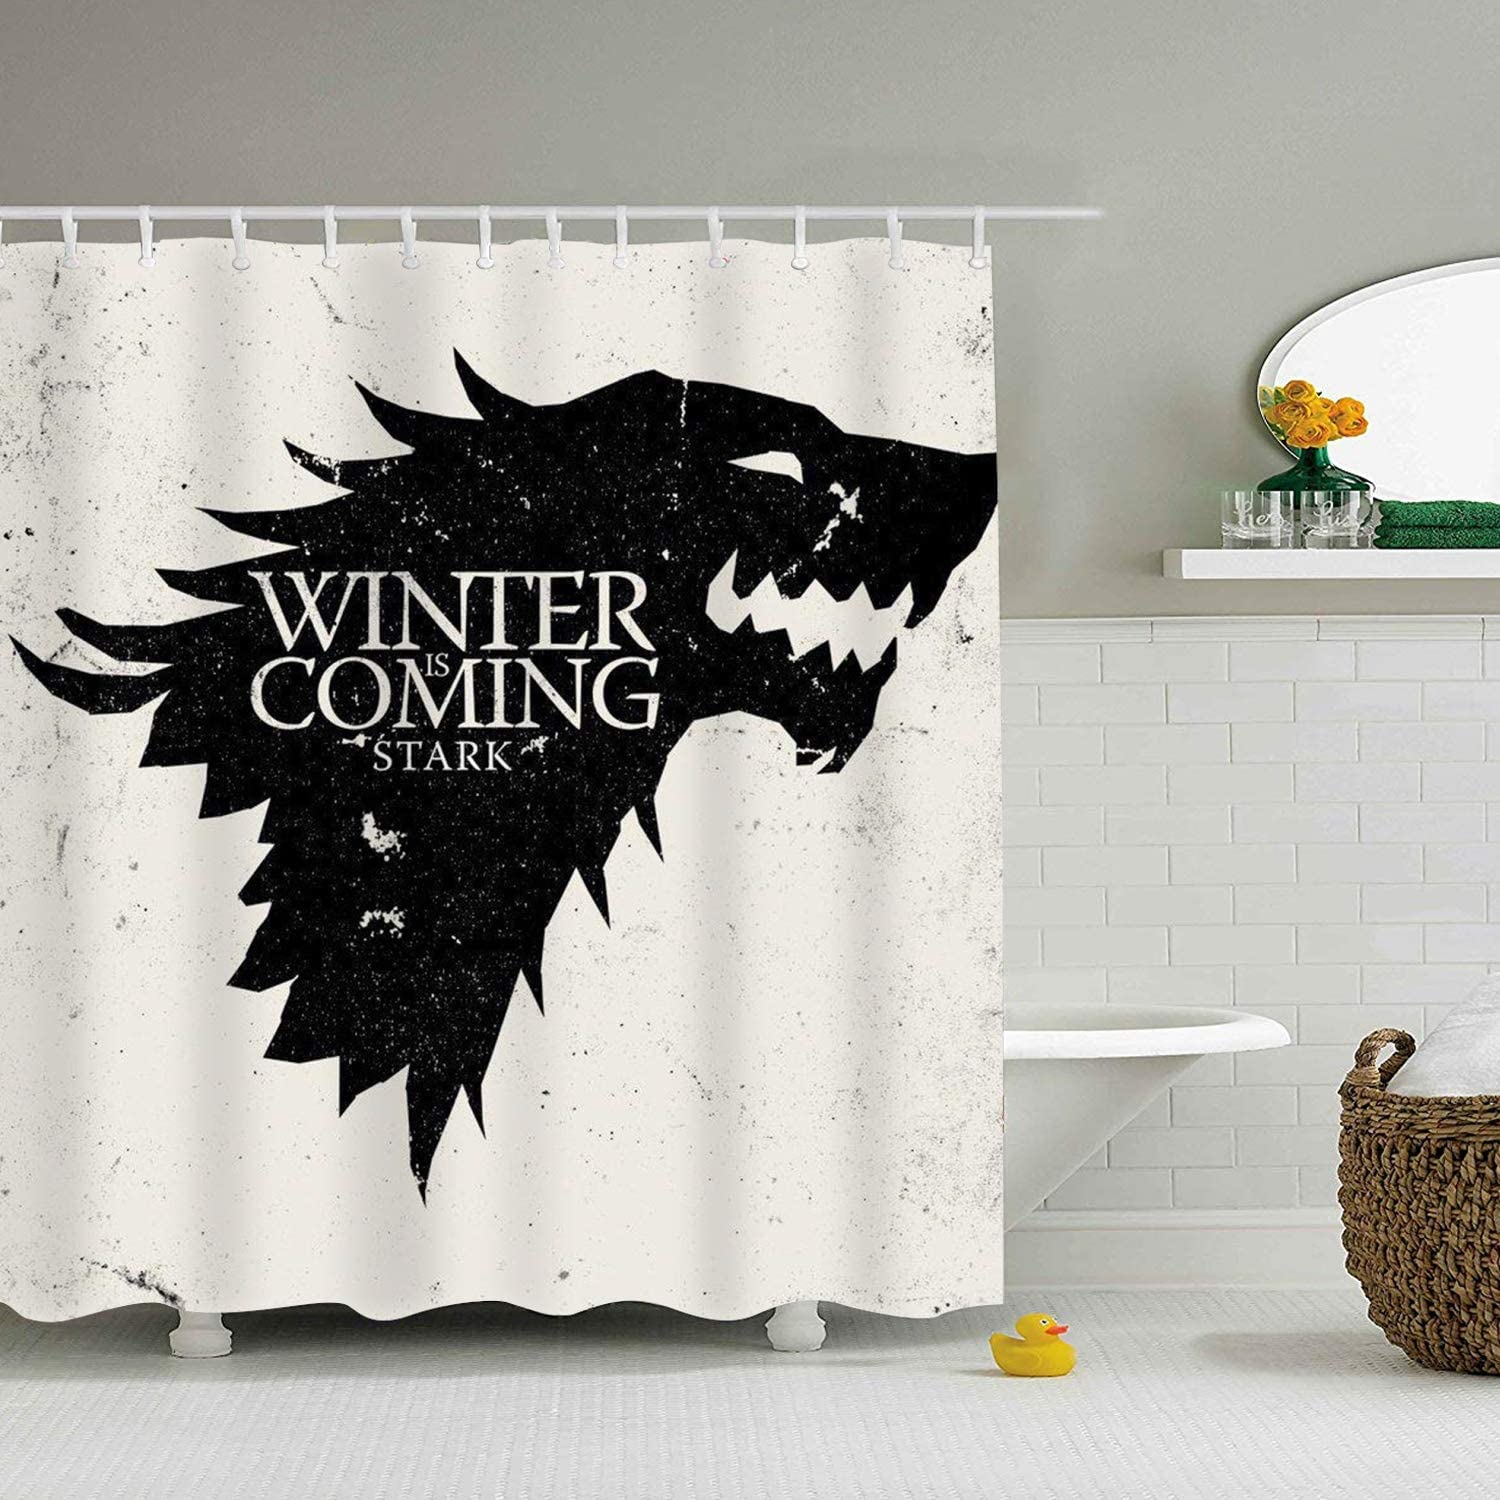 Hotel Luxury Water Repellent 65 x 72 inch for Decorative Bathroom Curtains Heavy Duty Fabric Game of Thrones Shower Curtain �C Spa